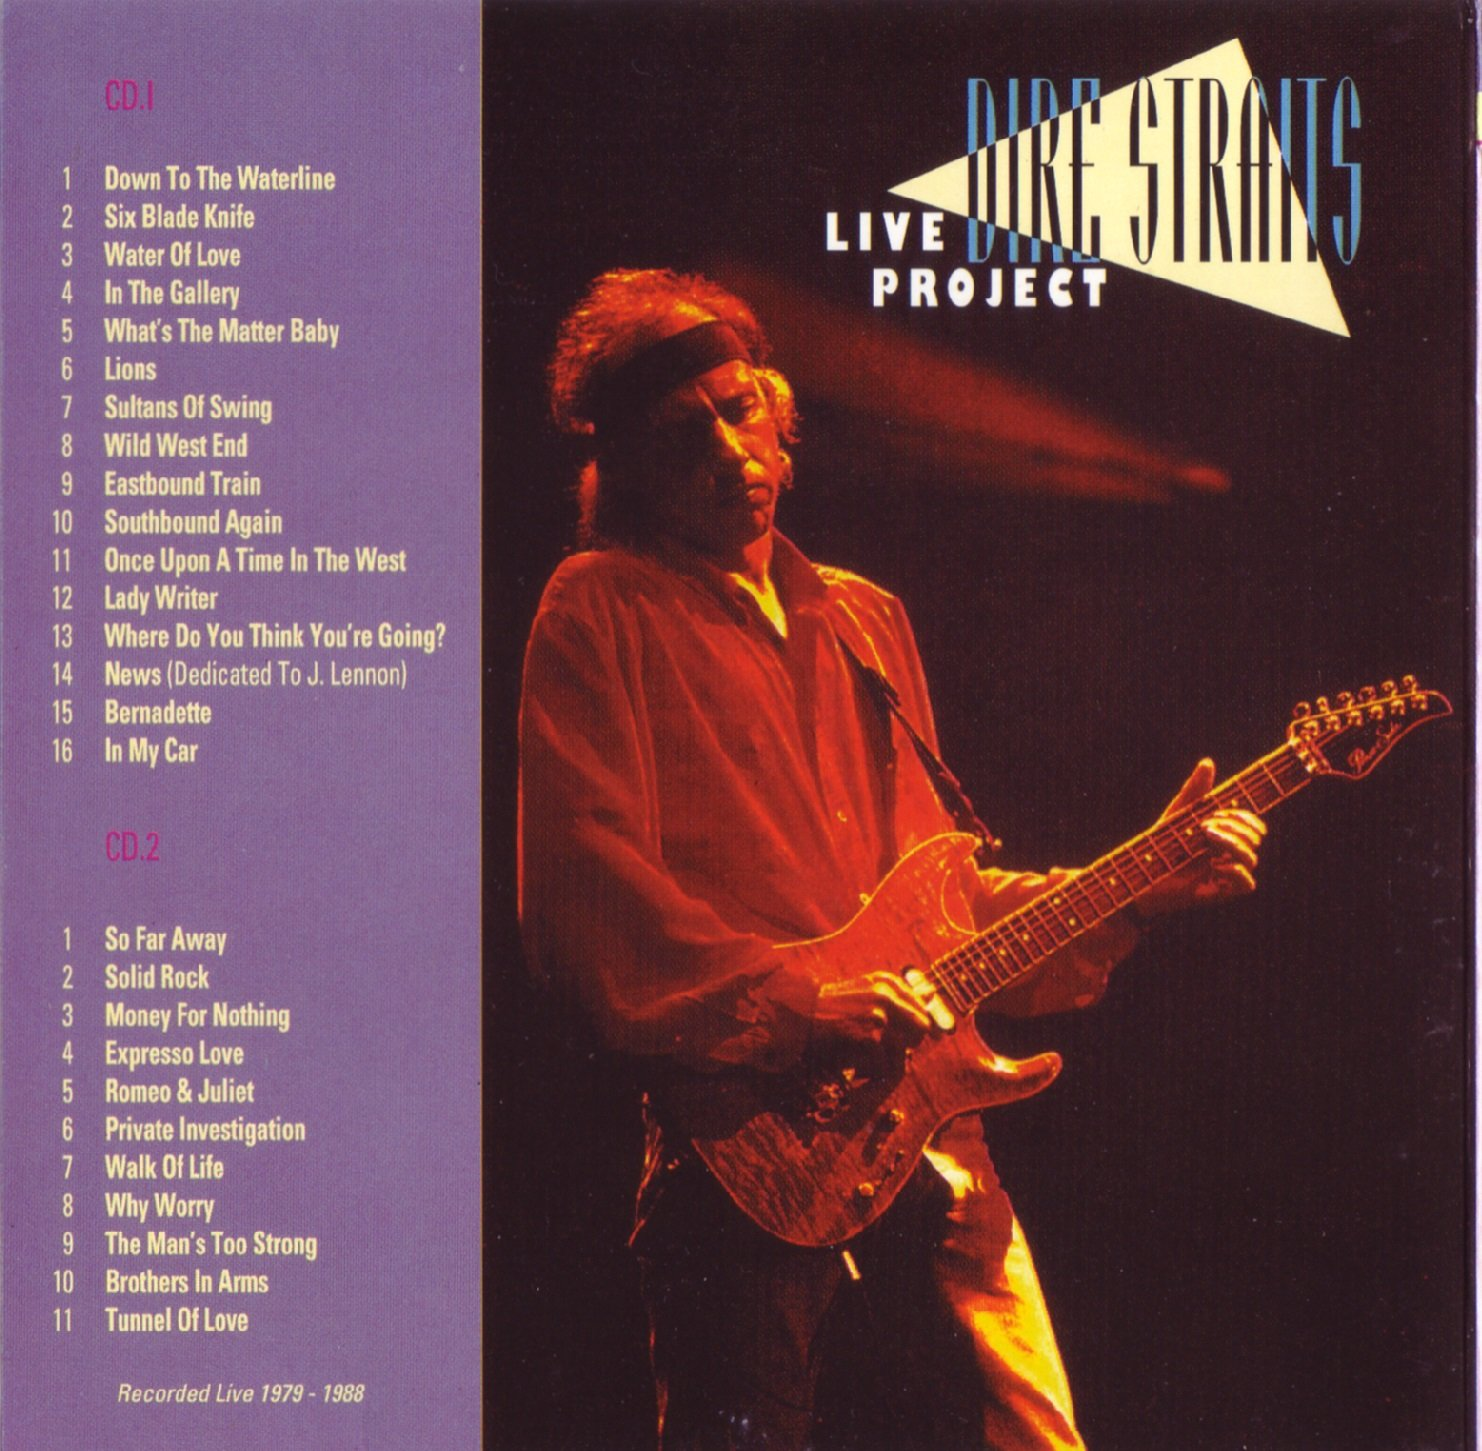 Live Project Rare 1979 1988 Dire Straits Last Fm I moved there from beijing just before i started my university studies, so i've. live project rare 1979 1988 dire